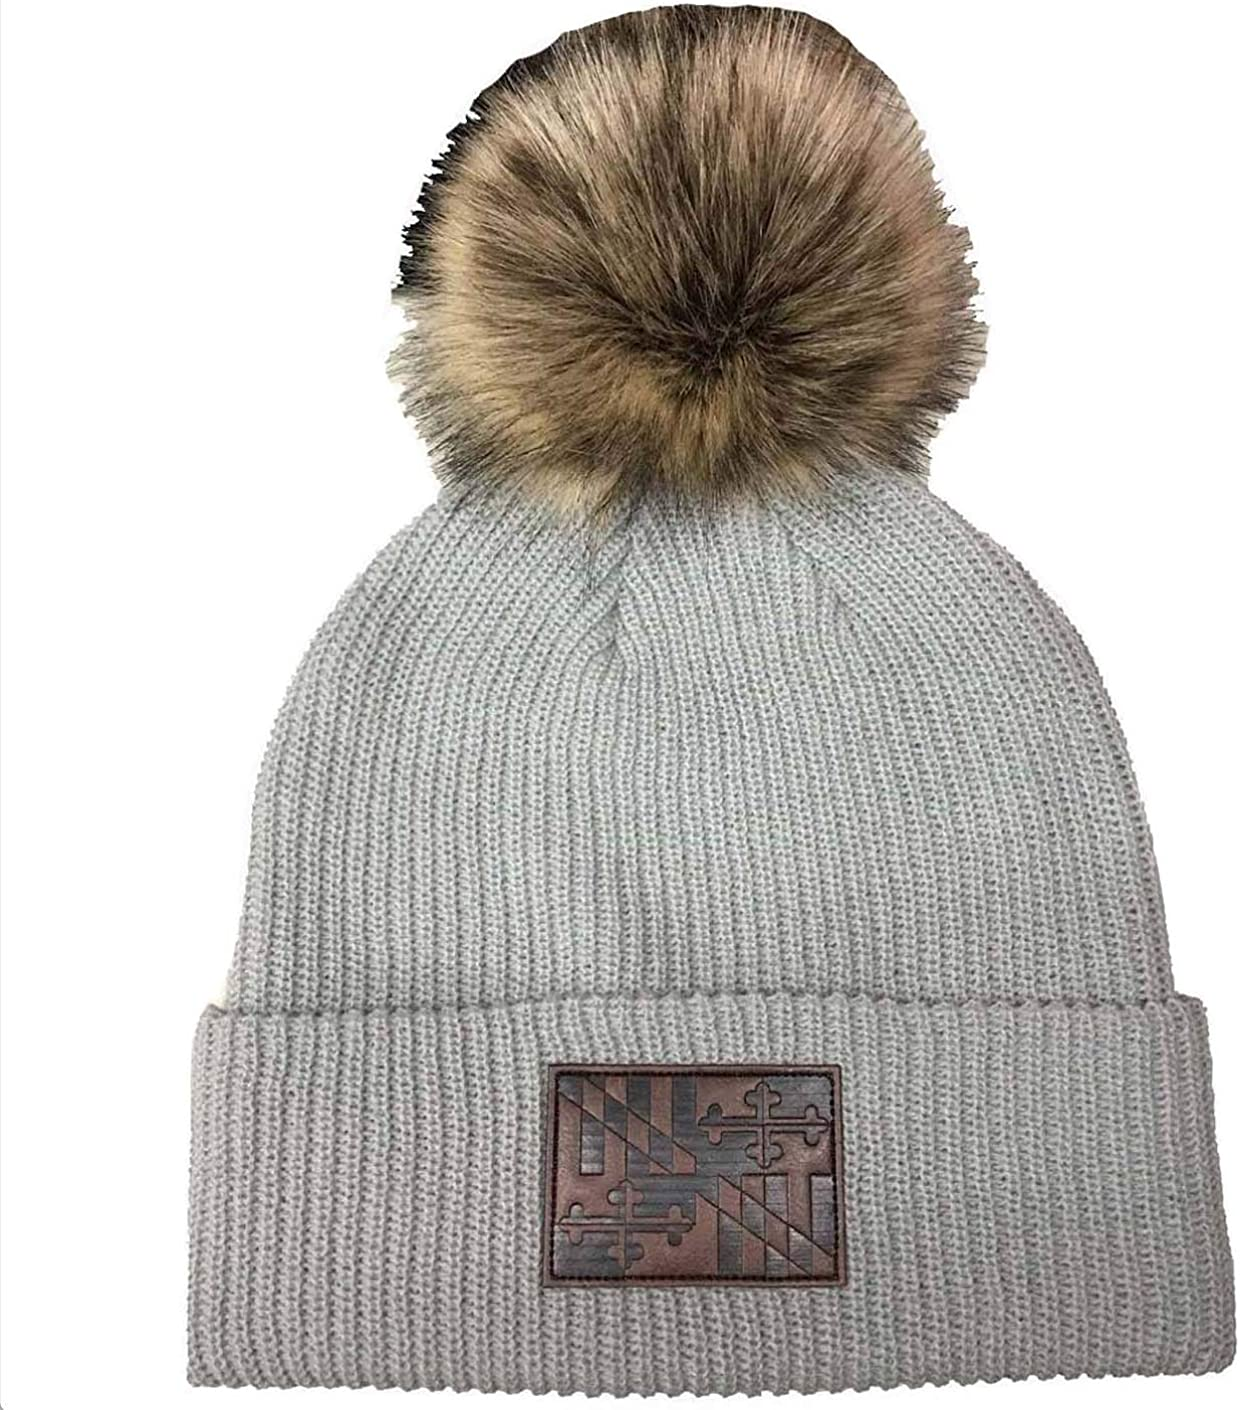 Route One Apparel | Maryland Flag Leather Patch Grey with Fur Pom Slouchy Knit Beanie Cap